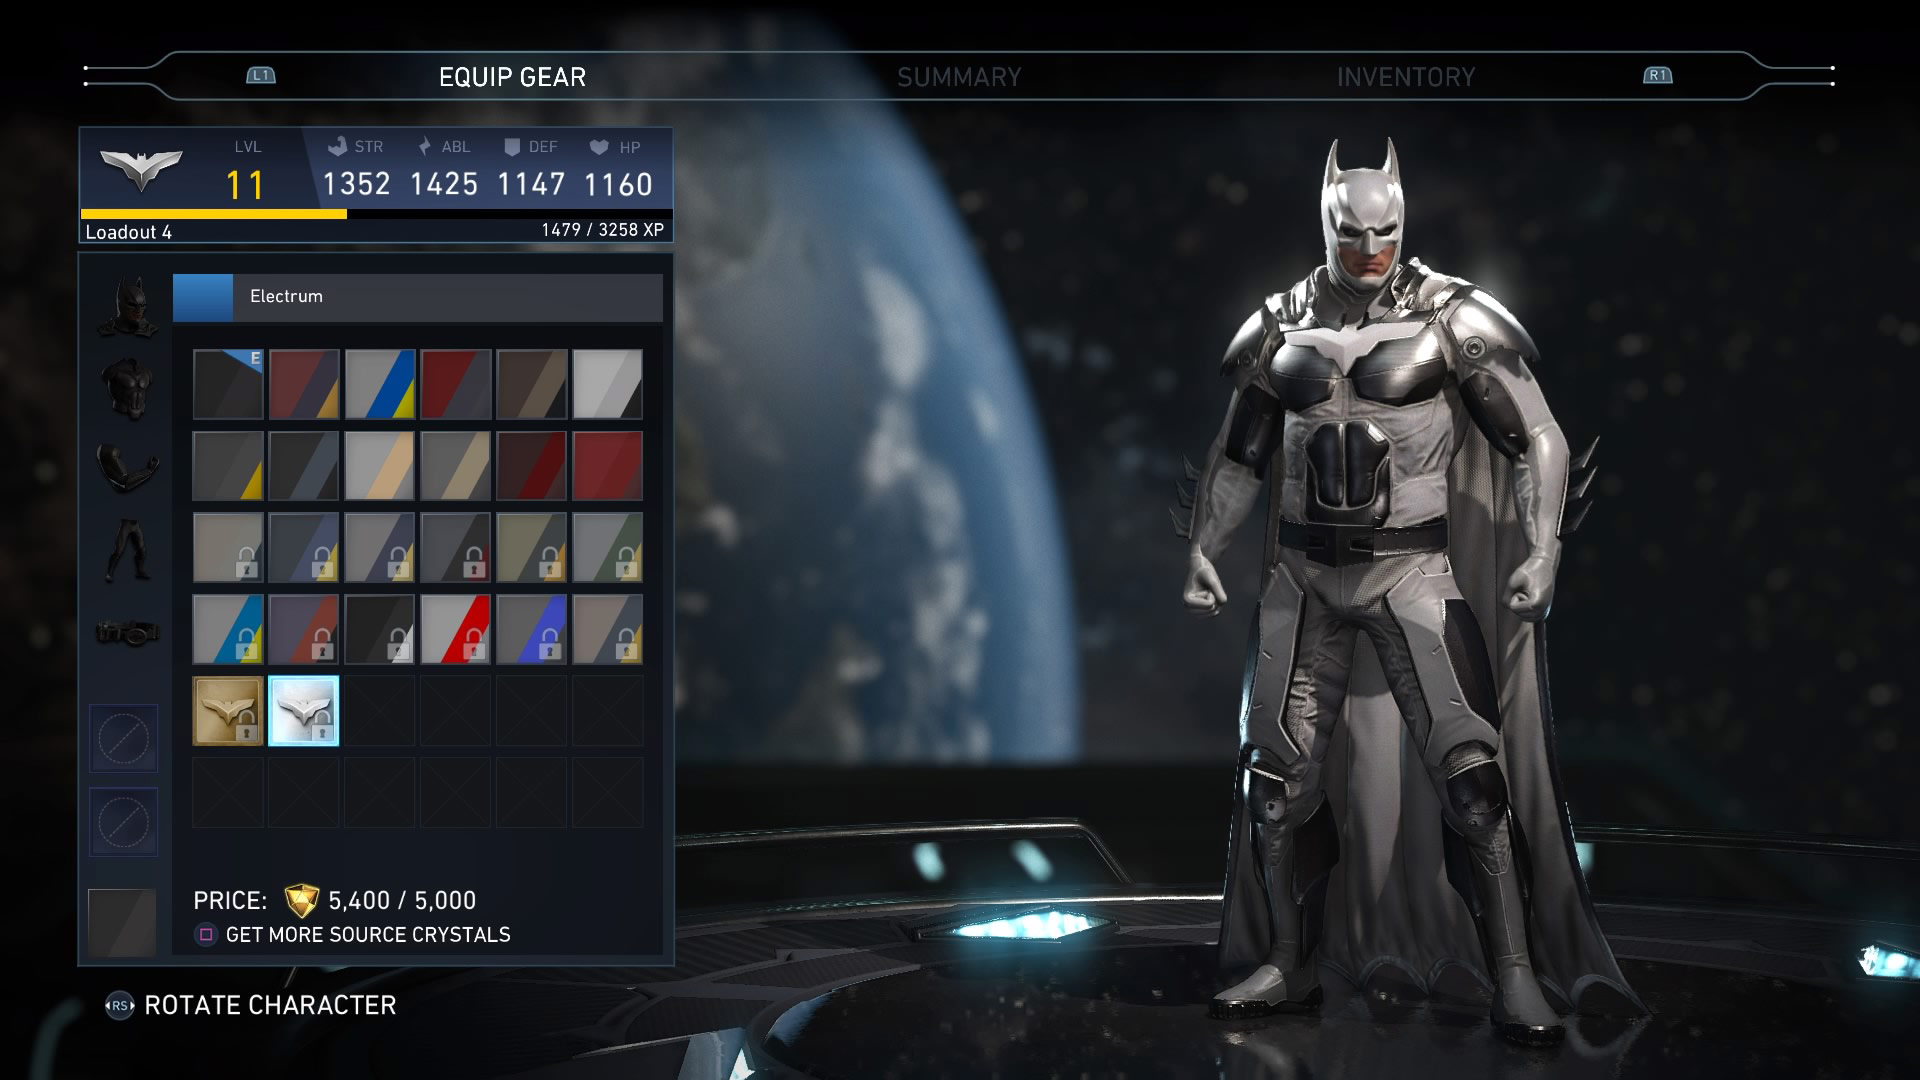 New shaders and Bizarro skin in Injustice 2 5 out of 6 image gallery